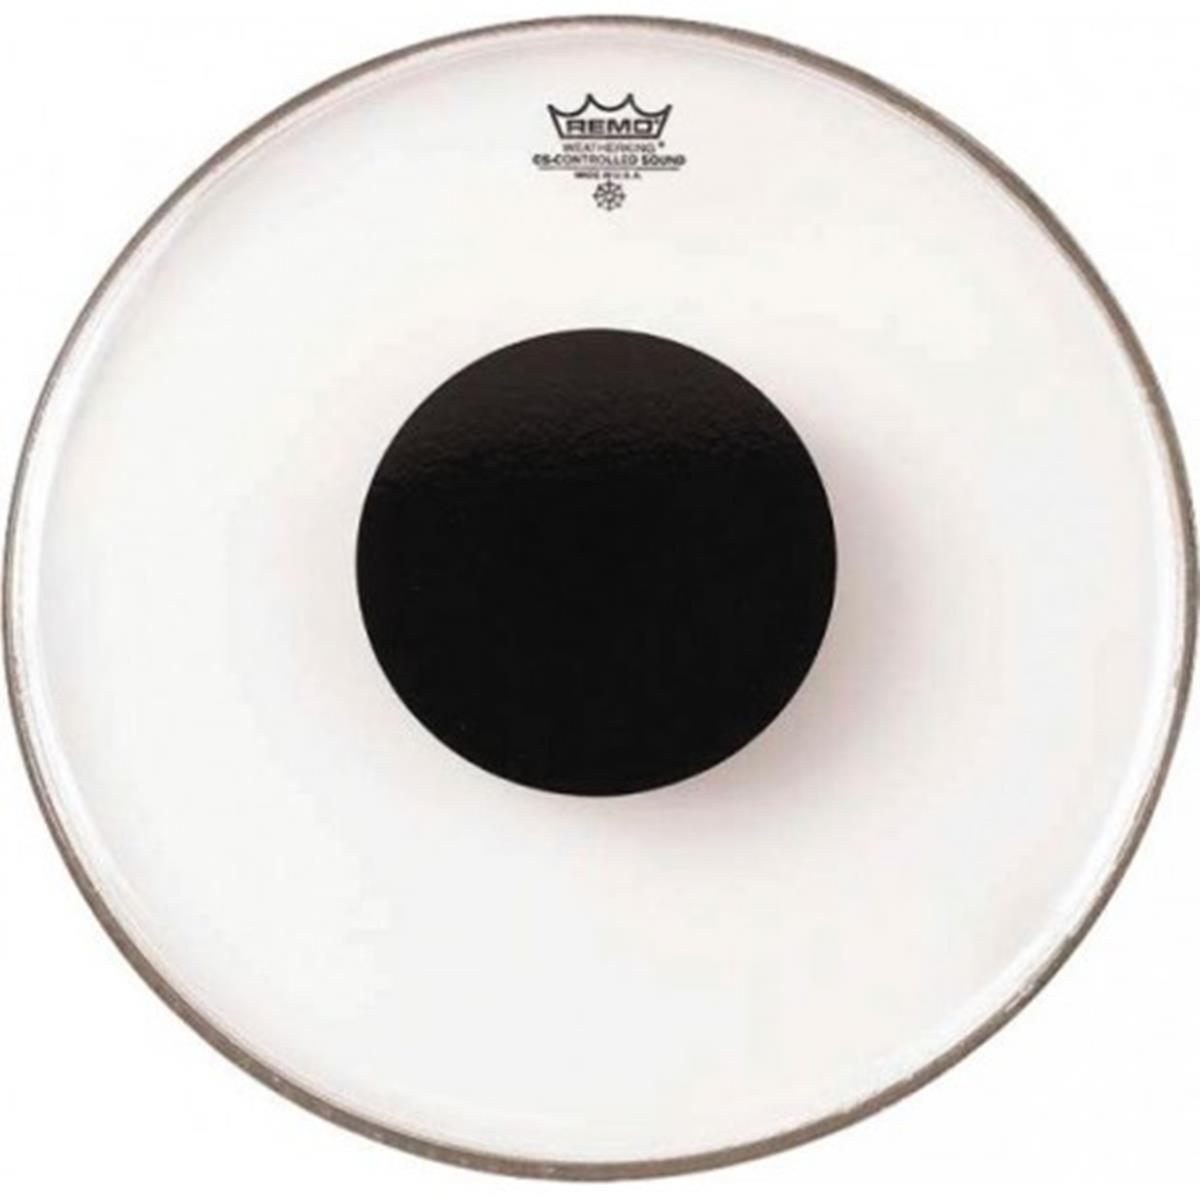 REMO CONTROLLED SOUND CLEAR DOT BLACK 6